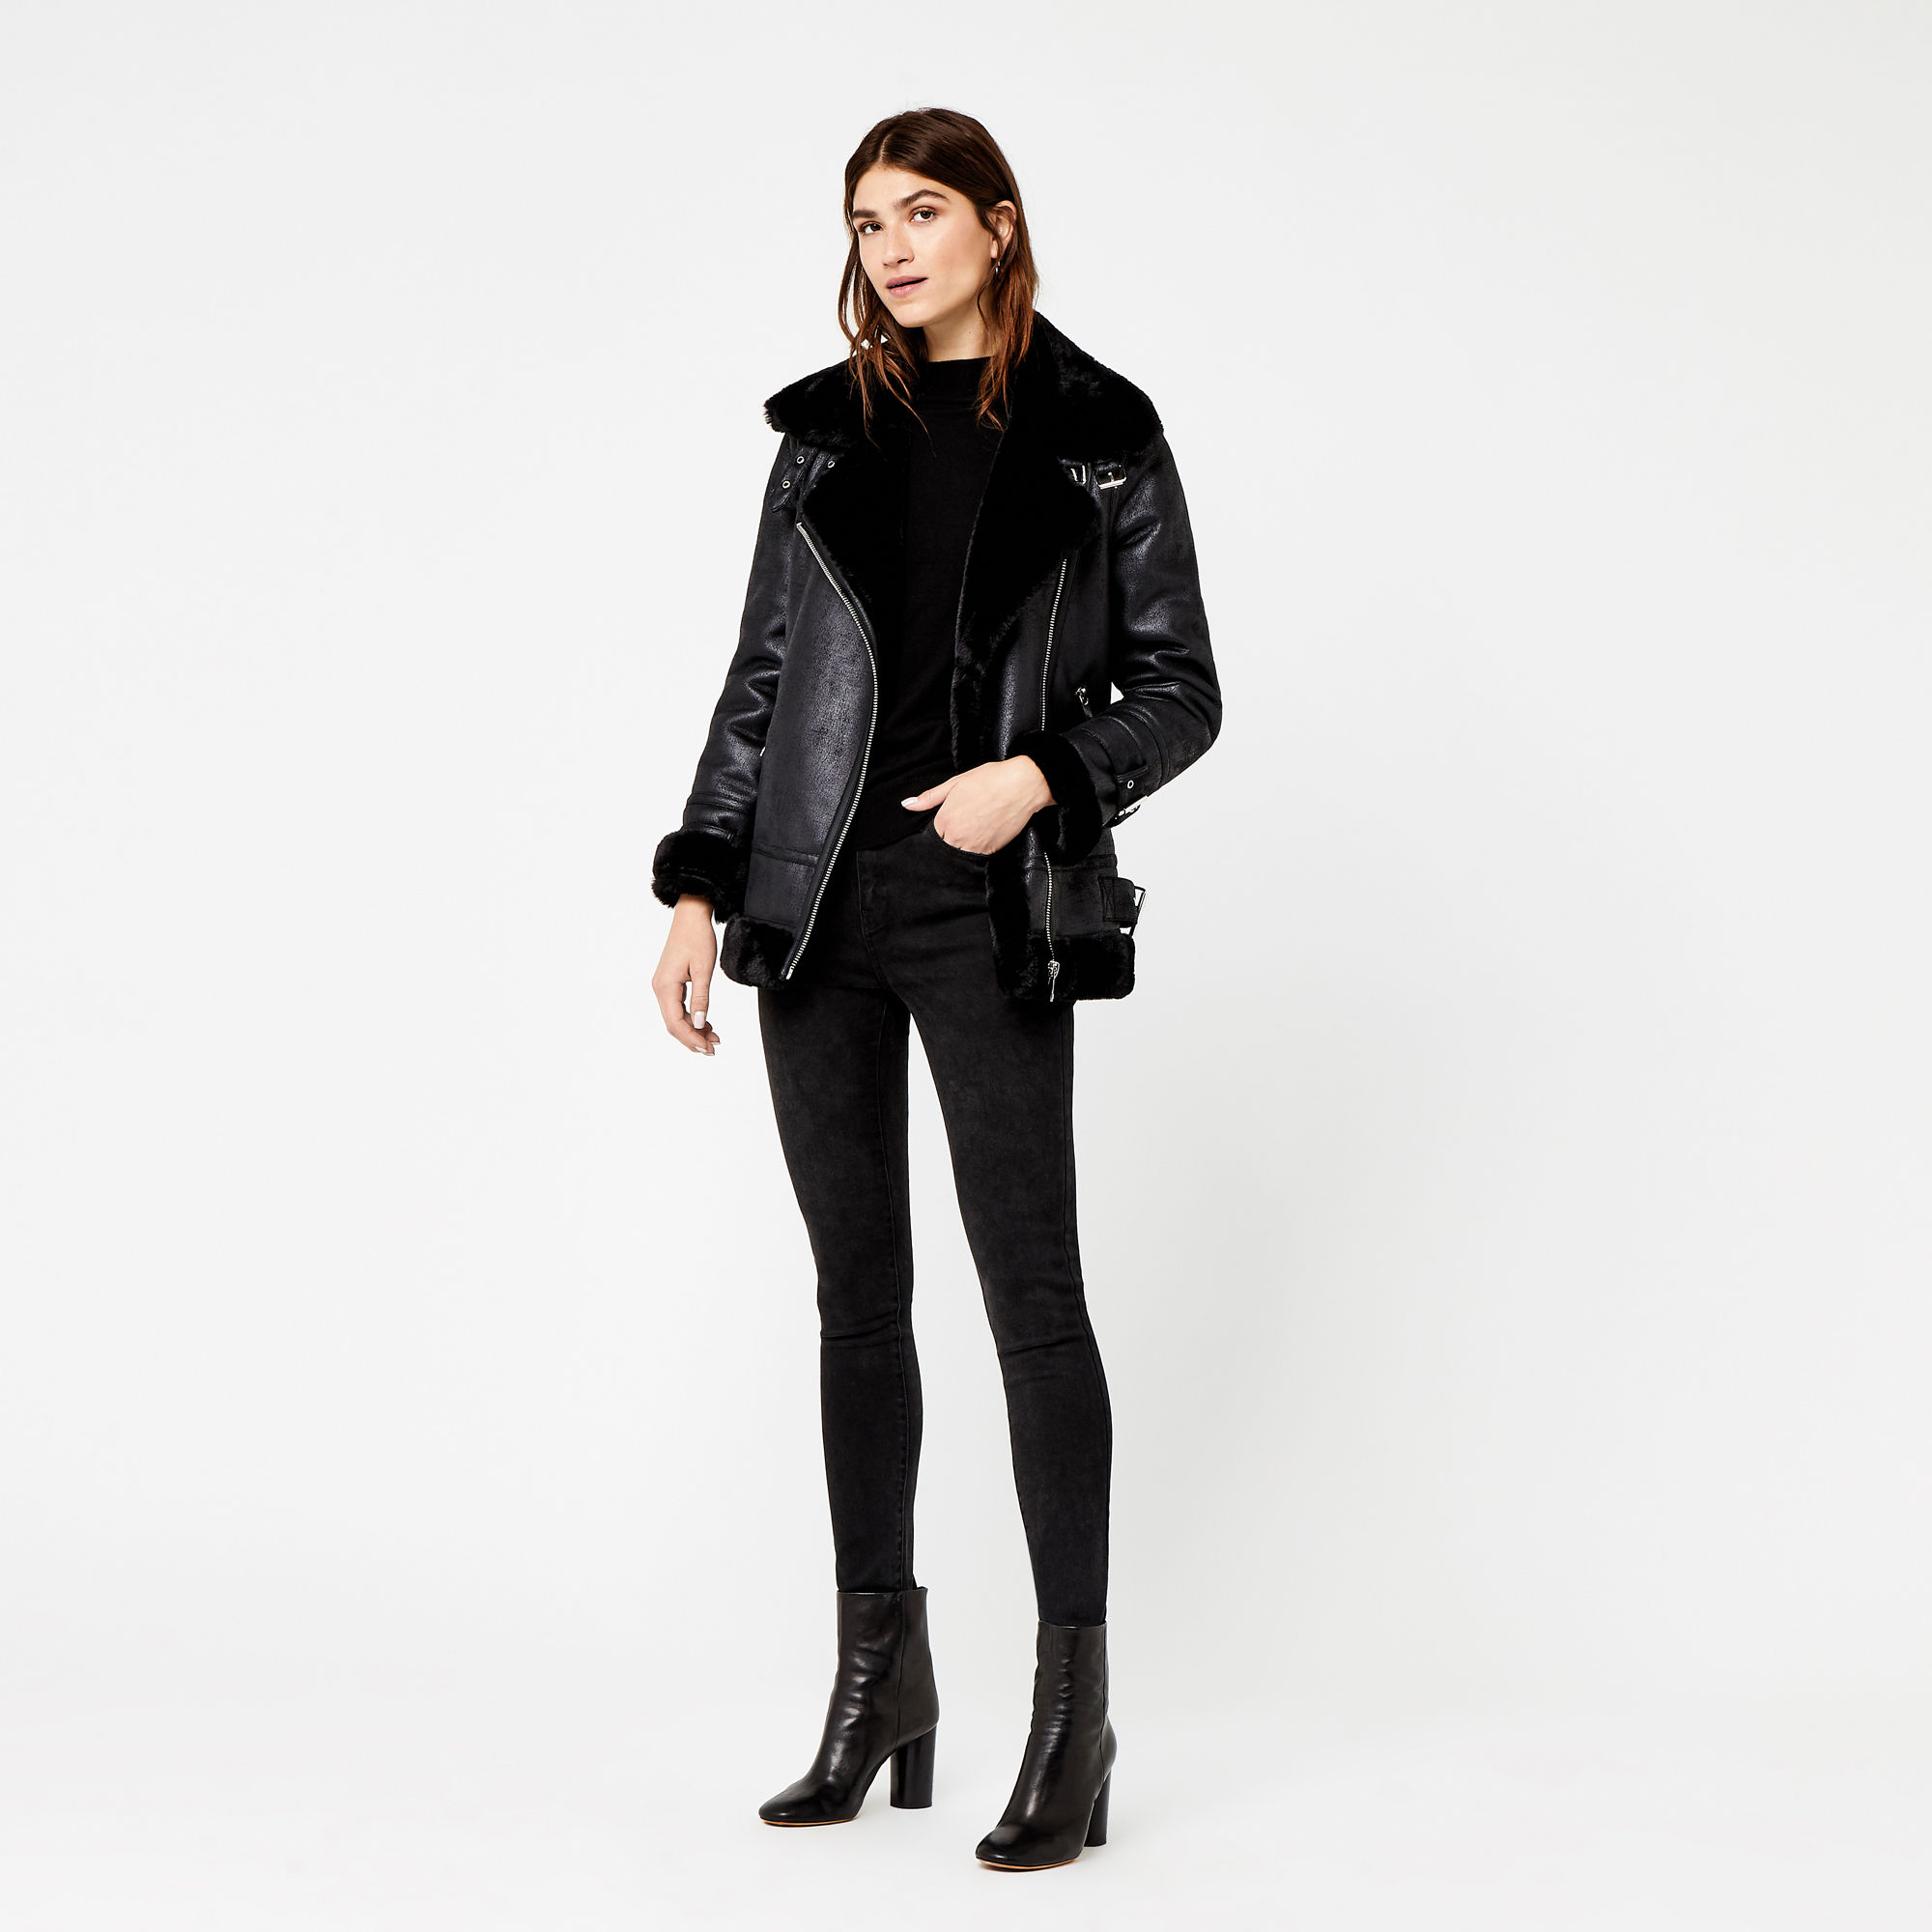 Warehouse  £89.00 Faux Shearling jacket, one of the best on the high street i think. It feels amazing and is incredible value. You need to grab this before it goes,